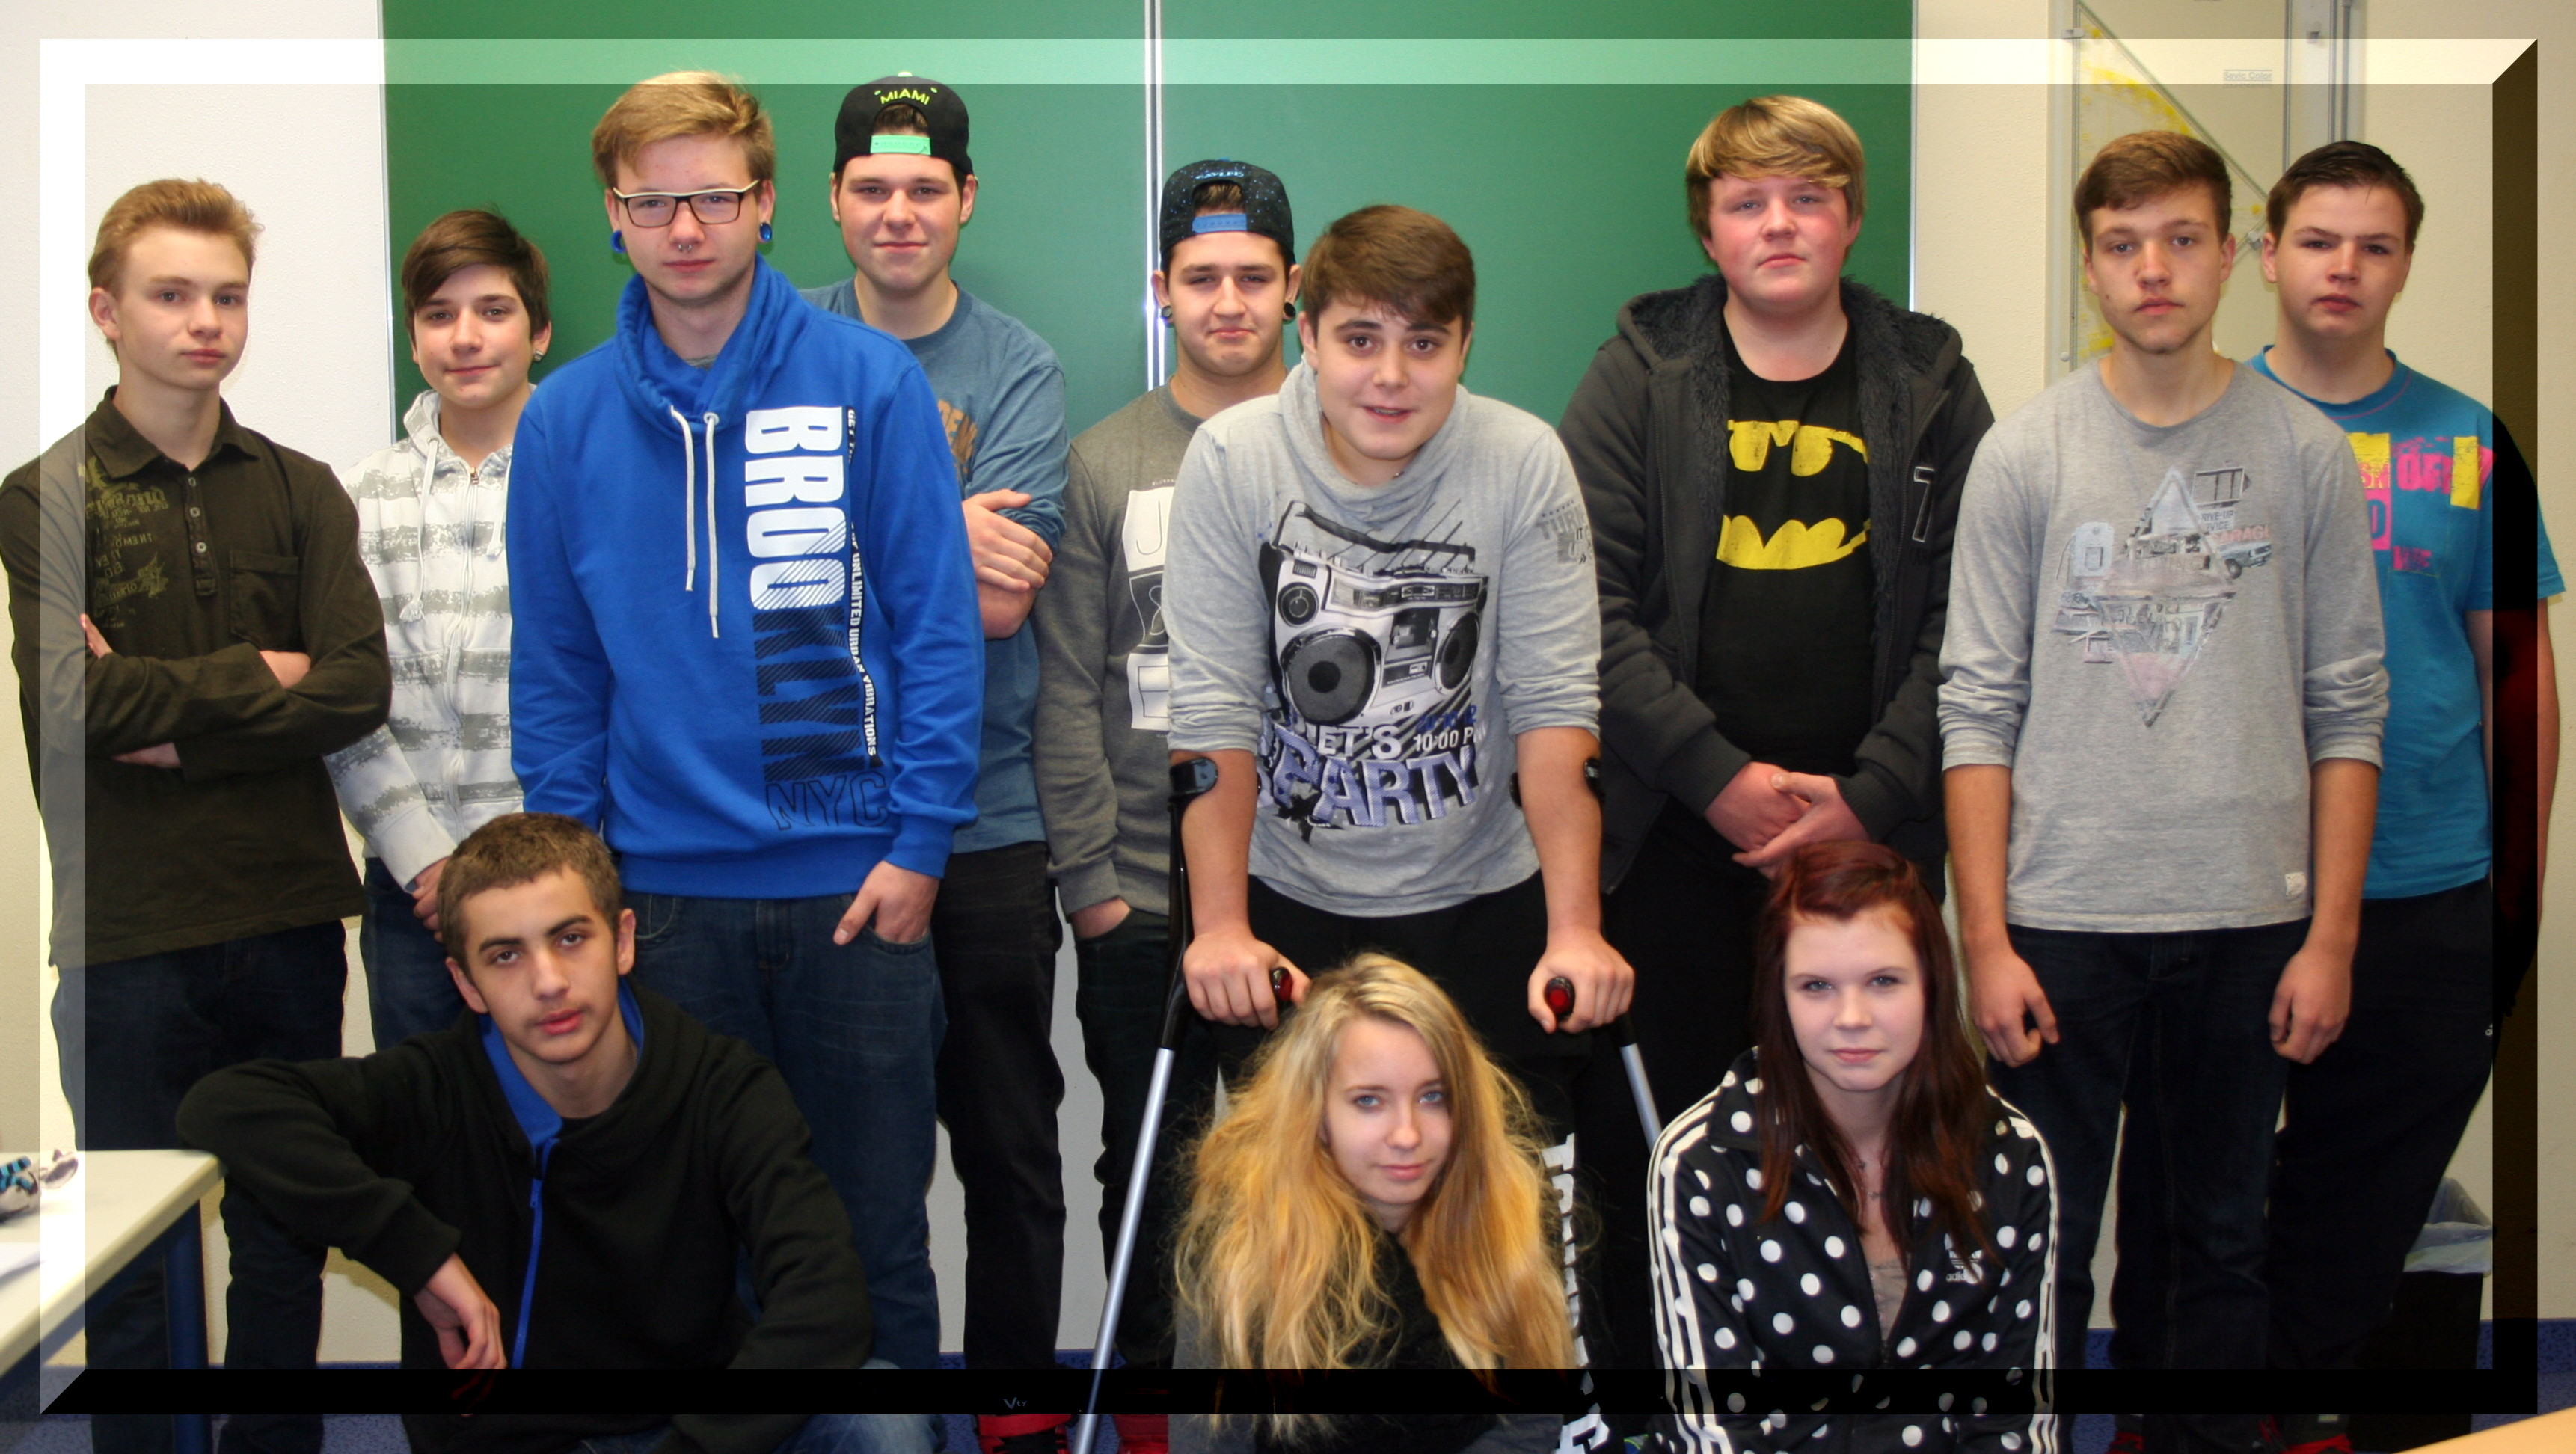 Klassenfoto BVJ August 2015